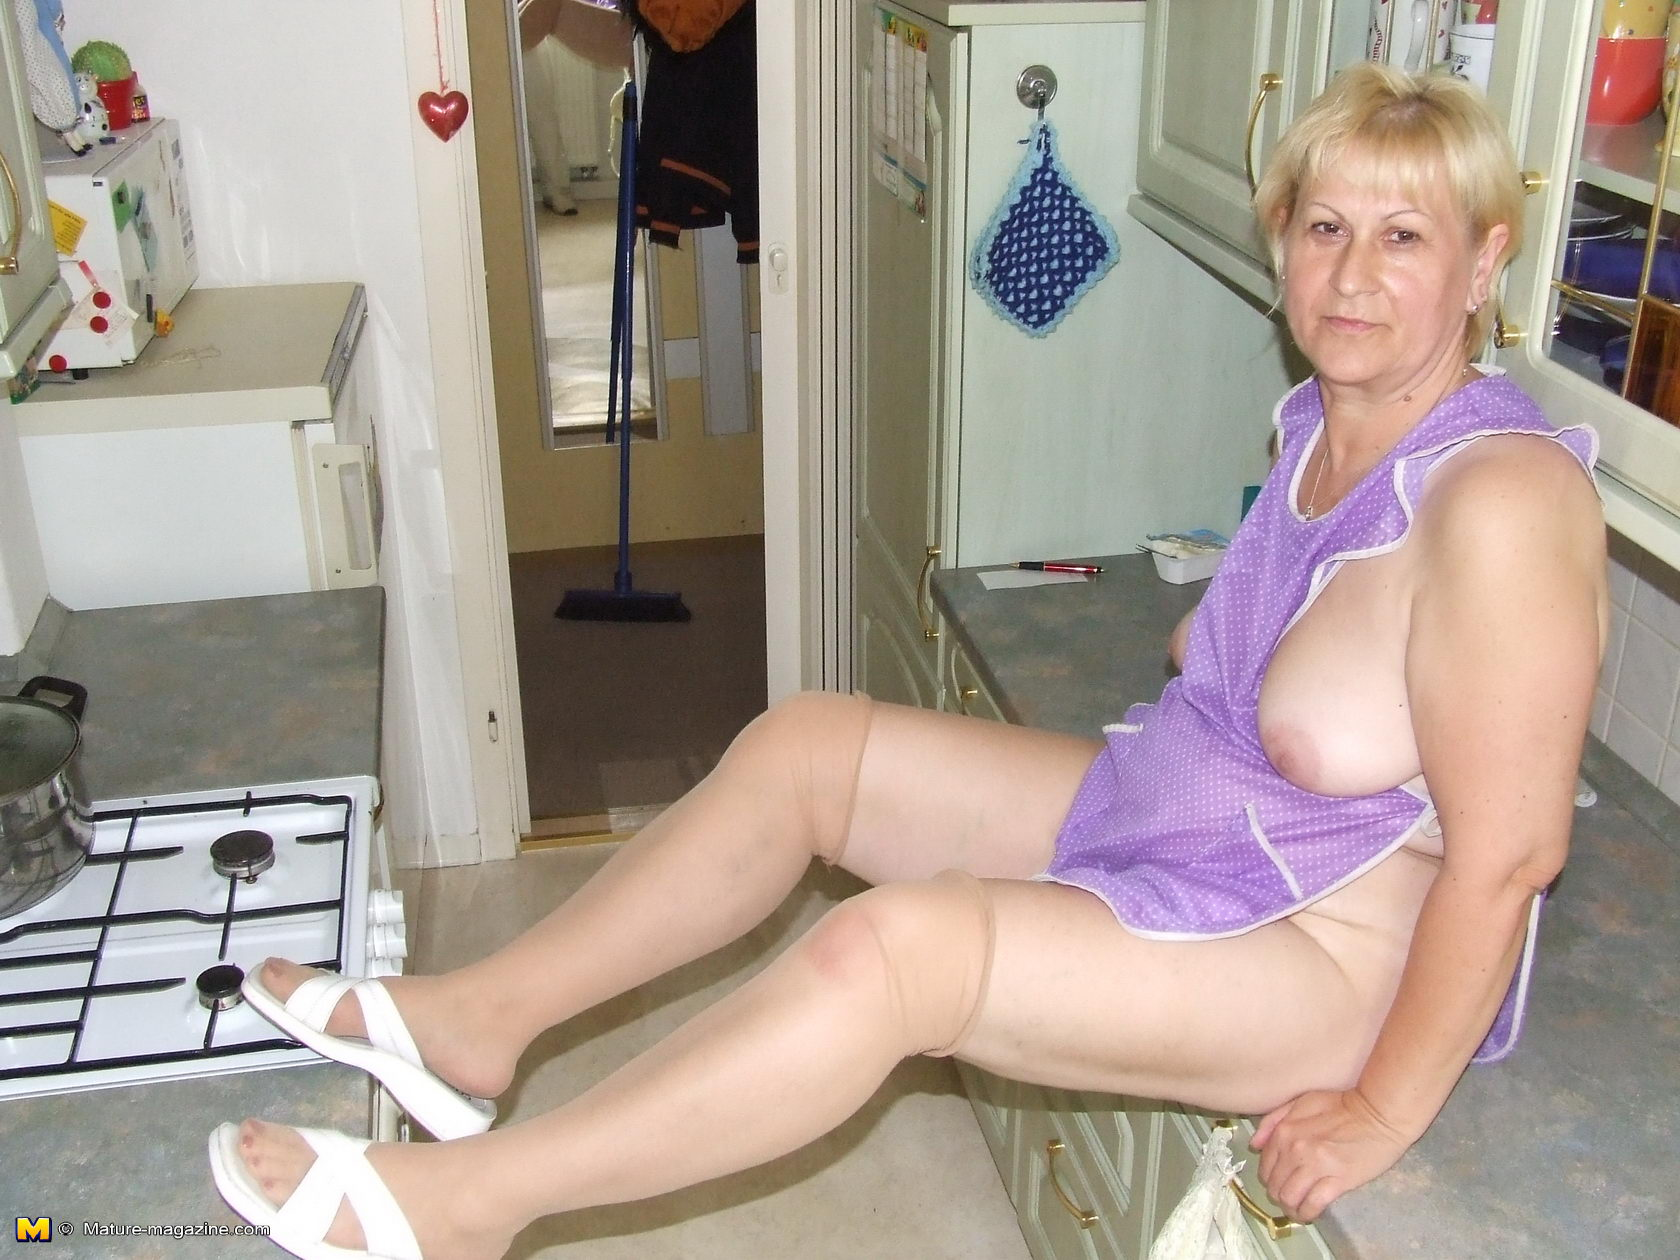 STUNNING amateur housewife mature baibi